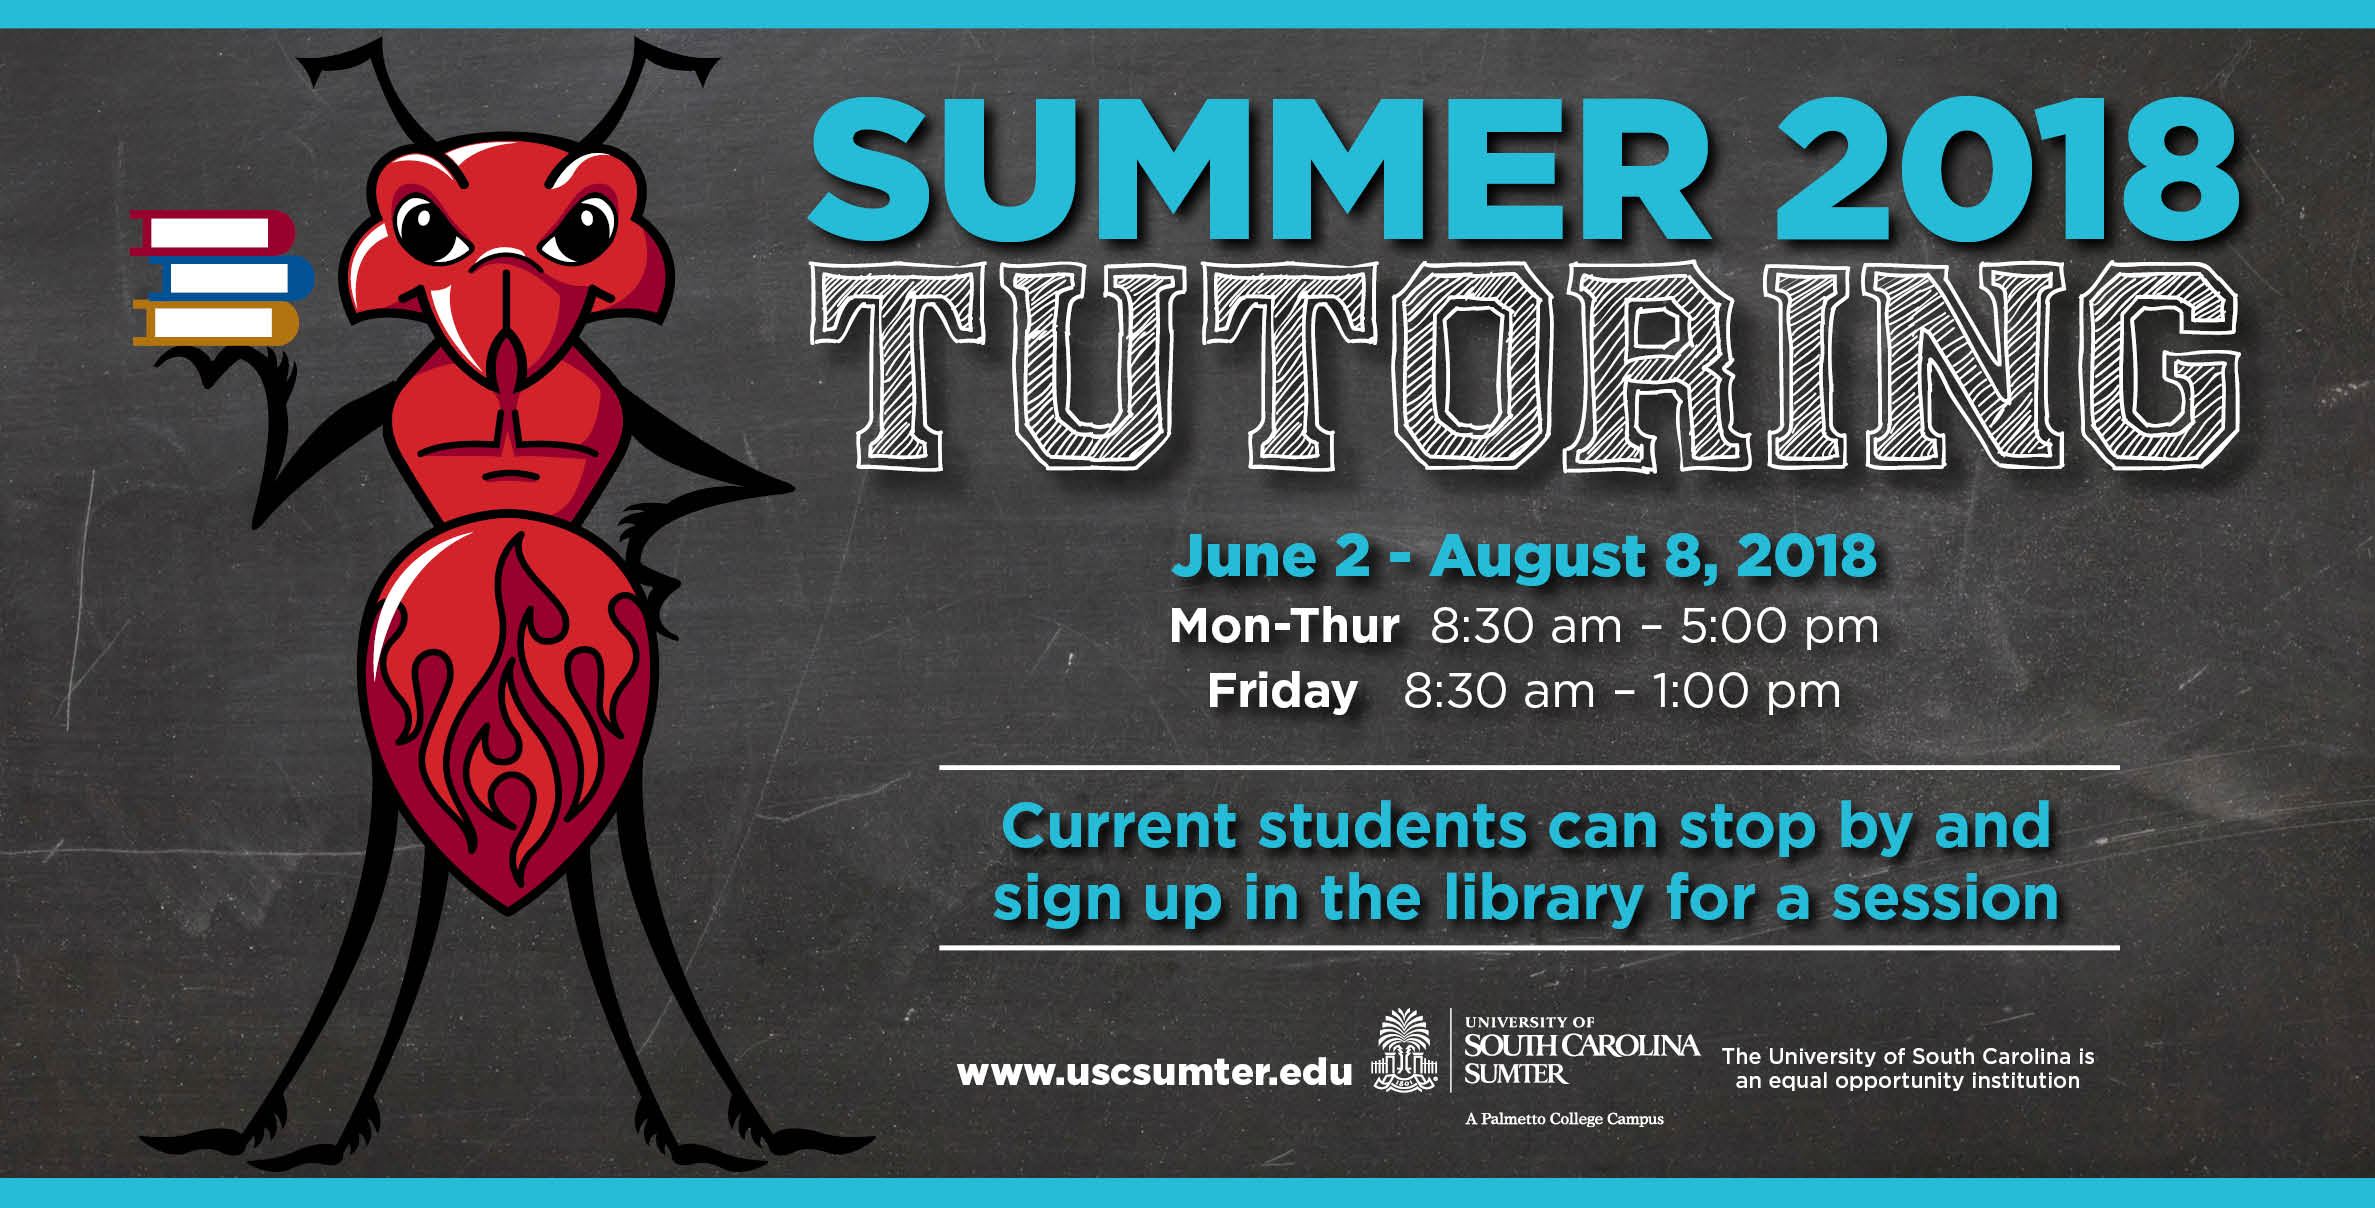 Summer 2018 Tutoring